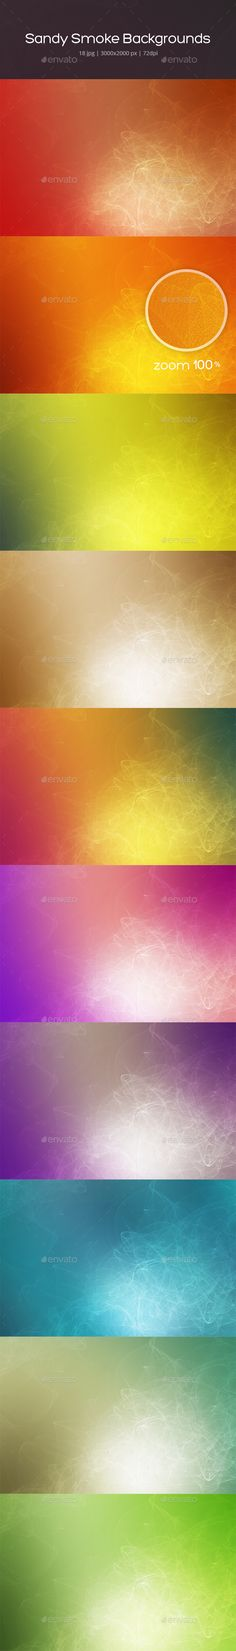 Sandy Smoke Backgrounds by ghssalem This pack includes 18 Sandy Smoke Backgrounds. 3000脳2000 px (72 dpi)